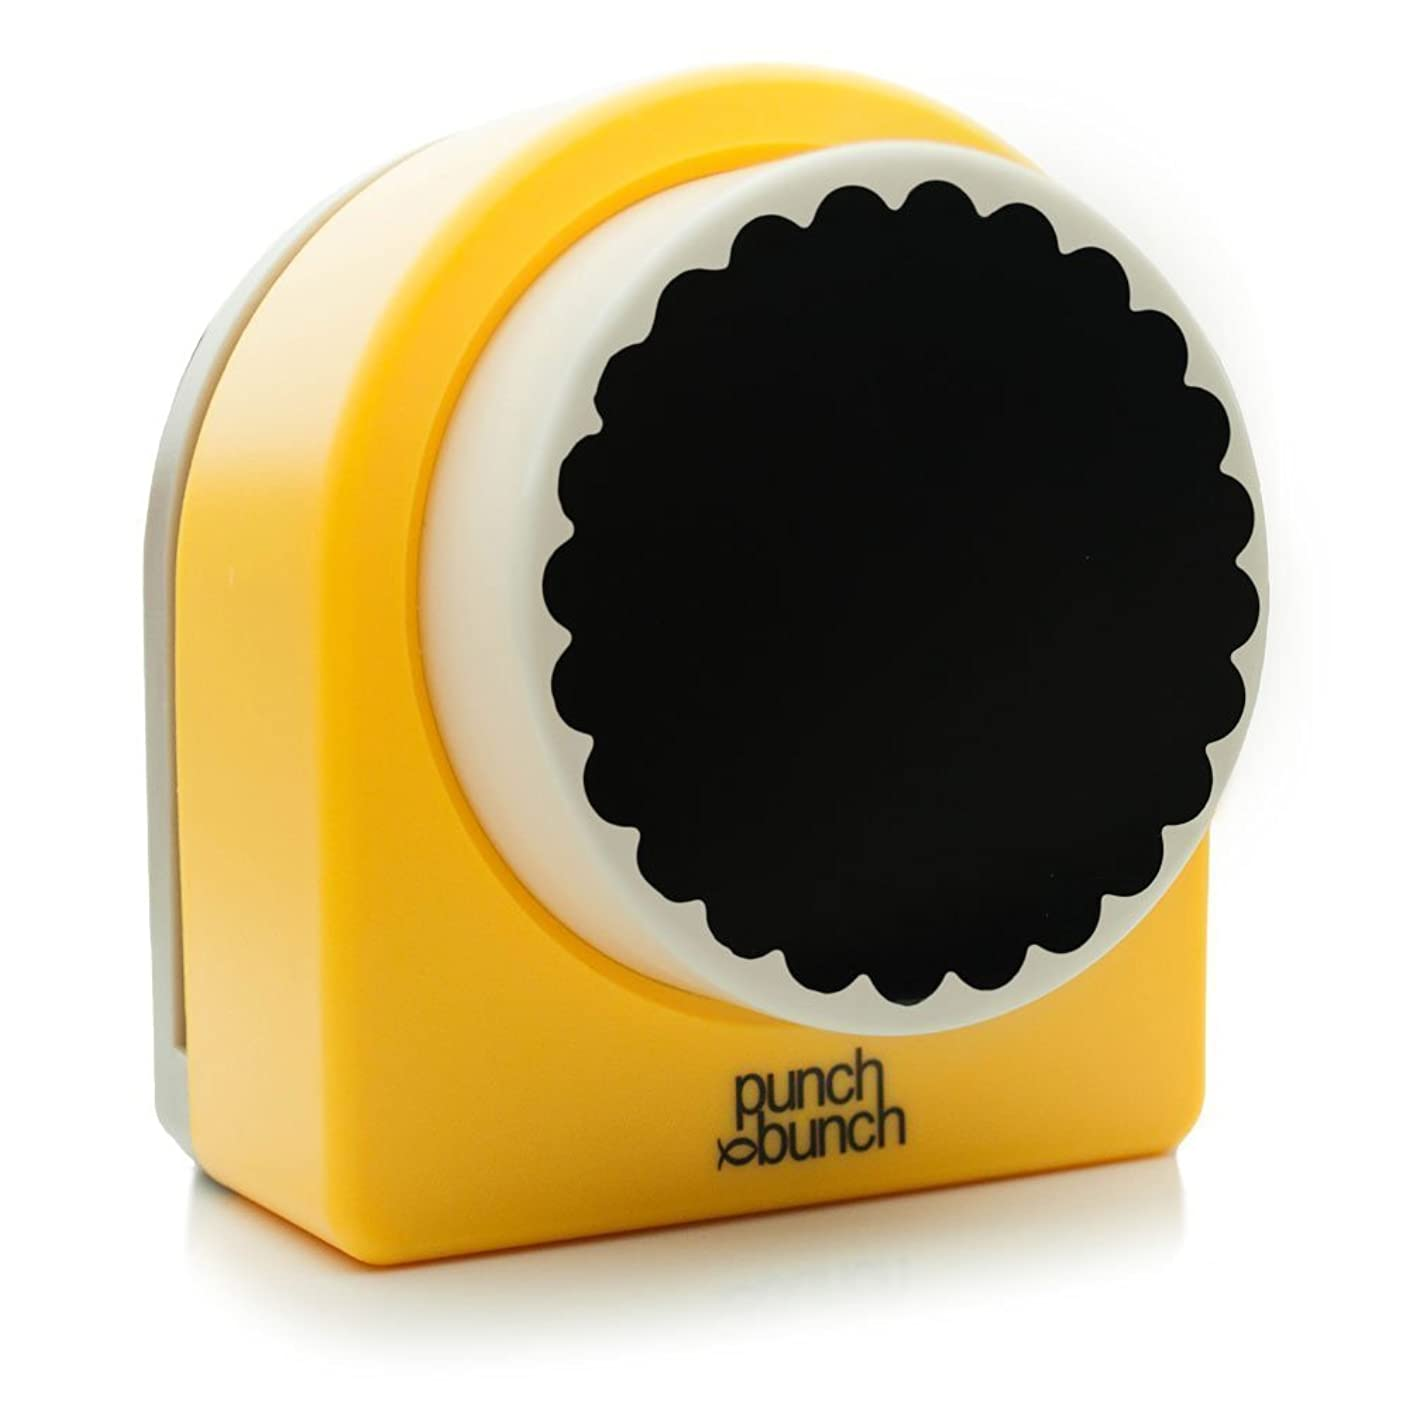 Punch Bunch Mega Giant Punch, Scalloped Circle, 72mm